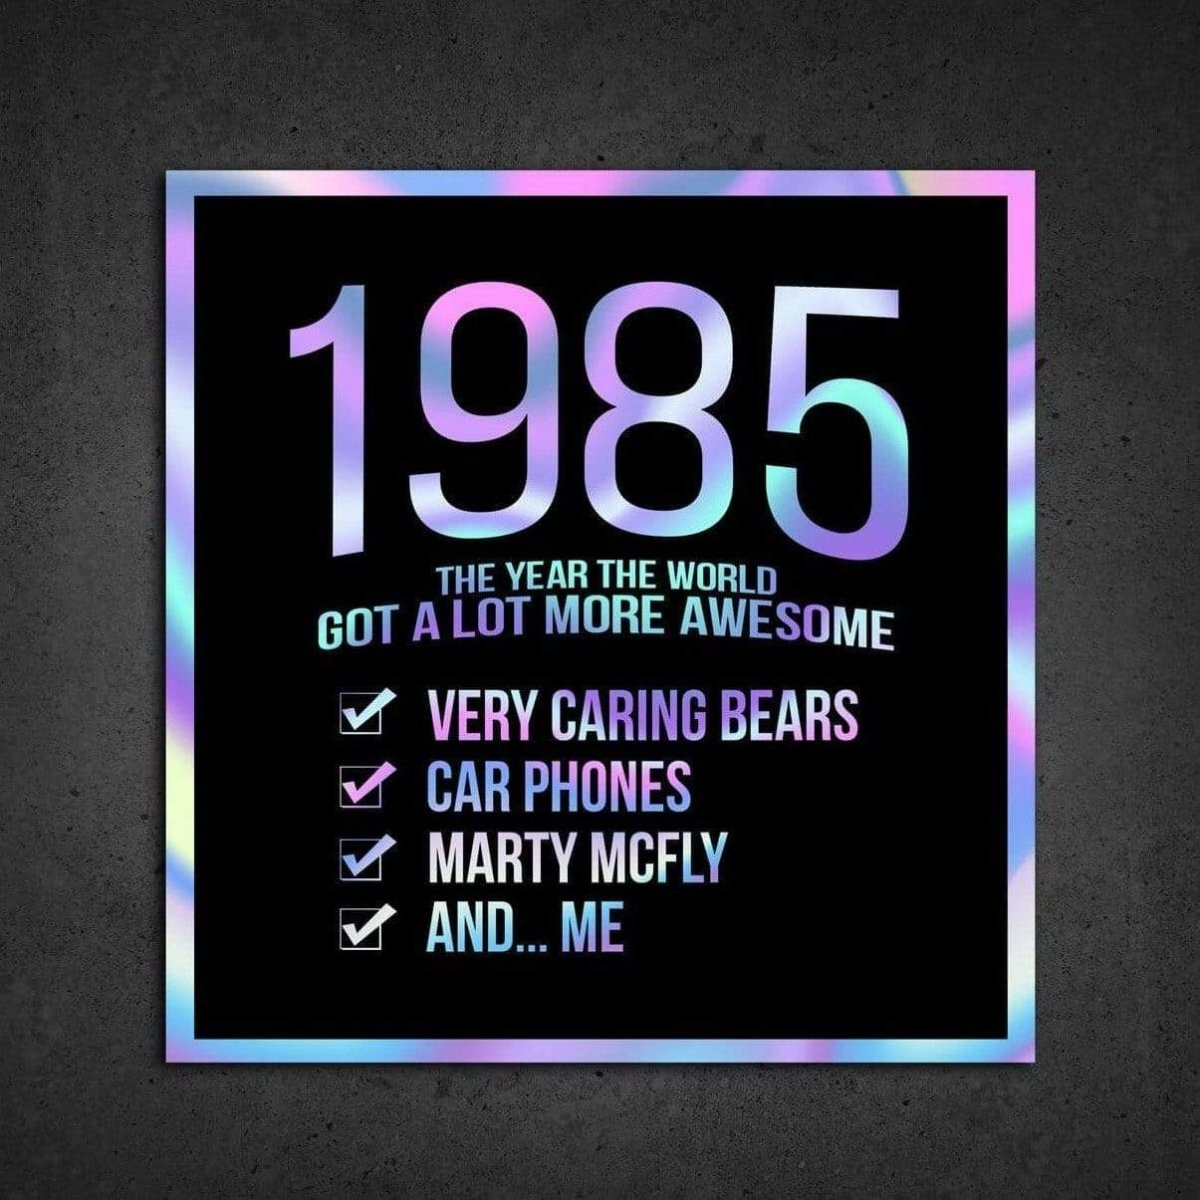 1985! Hologram Birth Year Sticker - Dan Pearce Sticker Shop